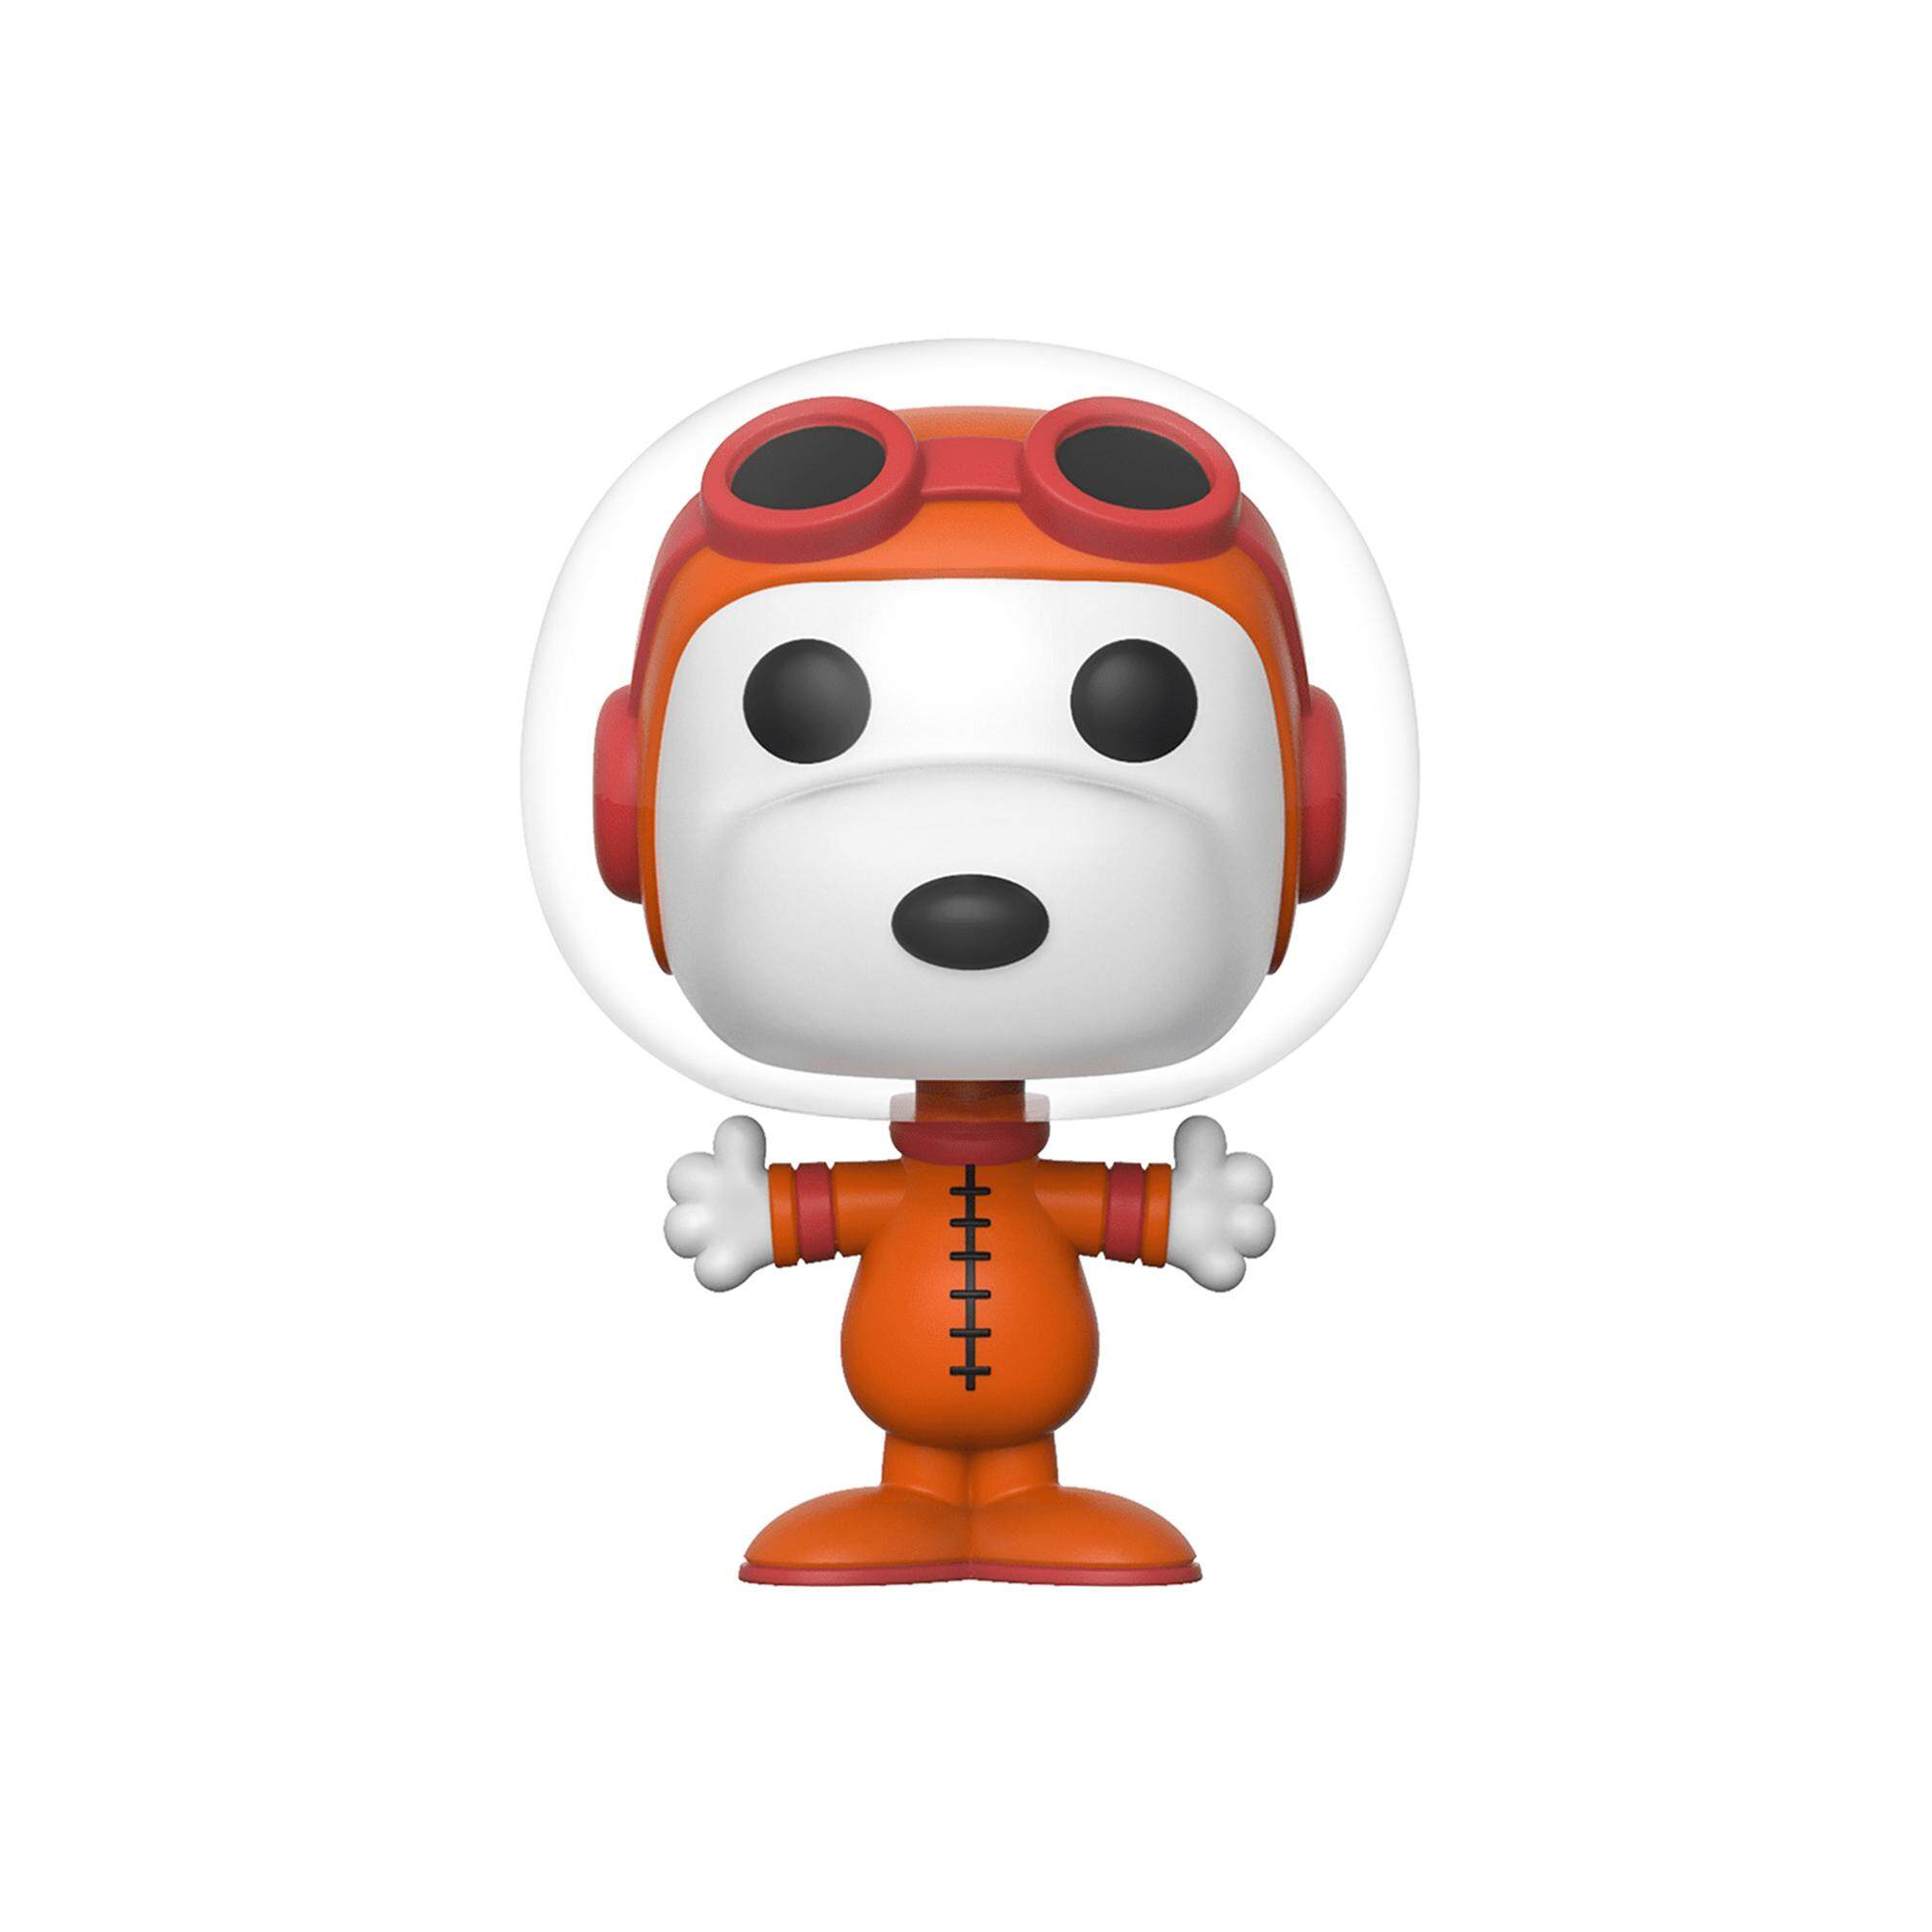 Funko Pop! Animation: Peanuts - Astronaut Snoopy [Sdcc 2019]